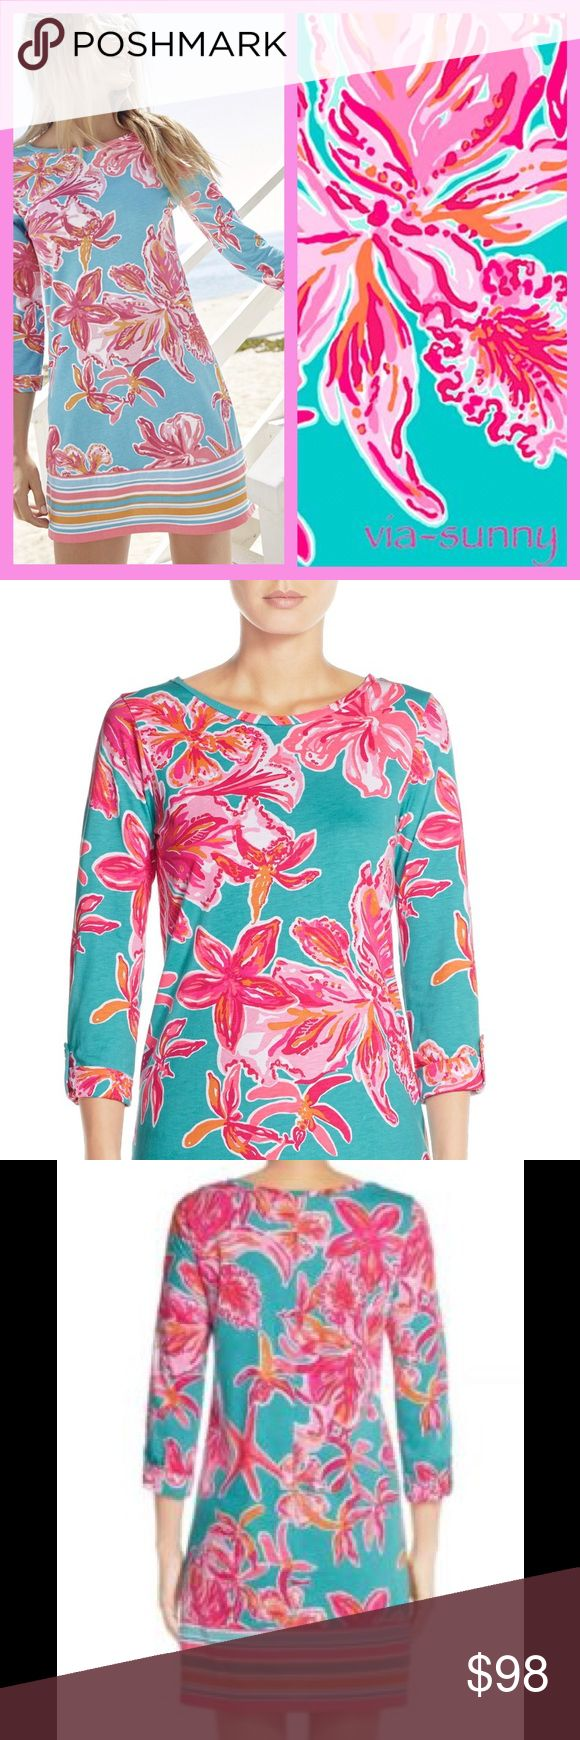 """Nwt Lilly Pulitzer linden in via sunny Gorgeous Linden t-shirt dress by Lilly Pulitzer in """"via sunny"""" print size large. This print was exclusively sold by Nordstrom and currently is out of stock. Vibrant and beautiful print will allow you to stand out in any occasion. Small details such as gold buttons along the sleeve. Will make a great addition to your wardrobe for any fan of Lilly. 100% cotton, pulls over head, hits slightly above knee. Don't miss out on this stunner! Lilly Pulitzer…"""